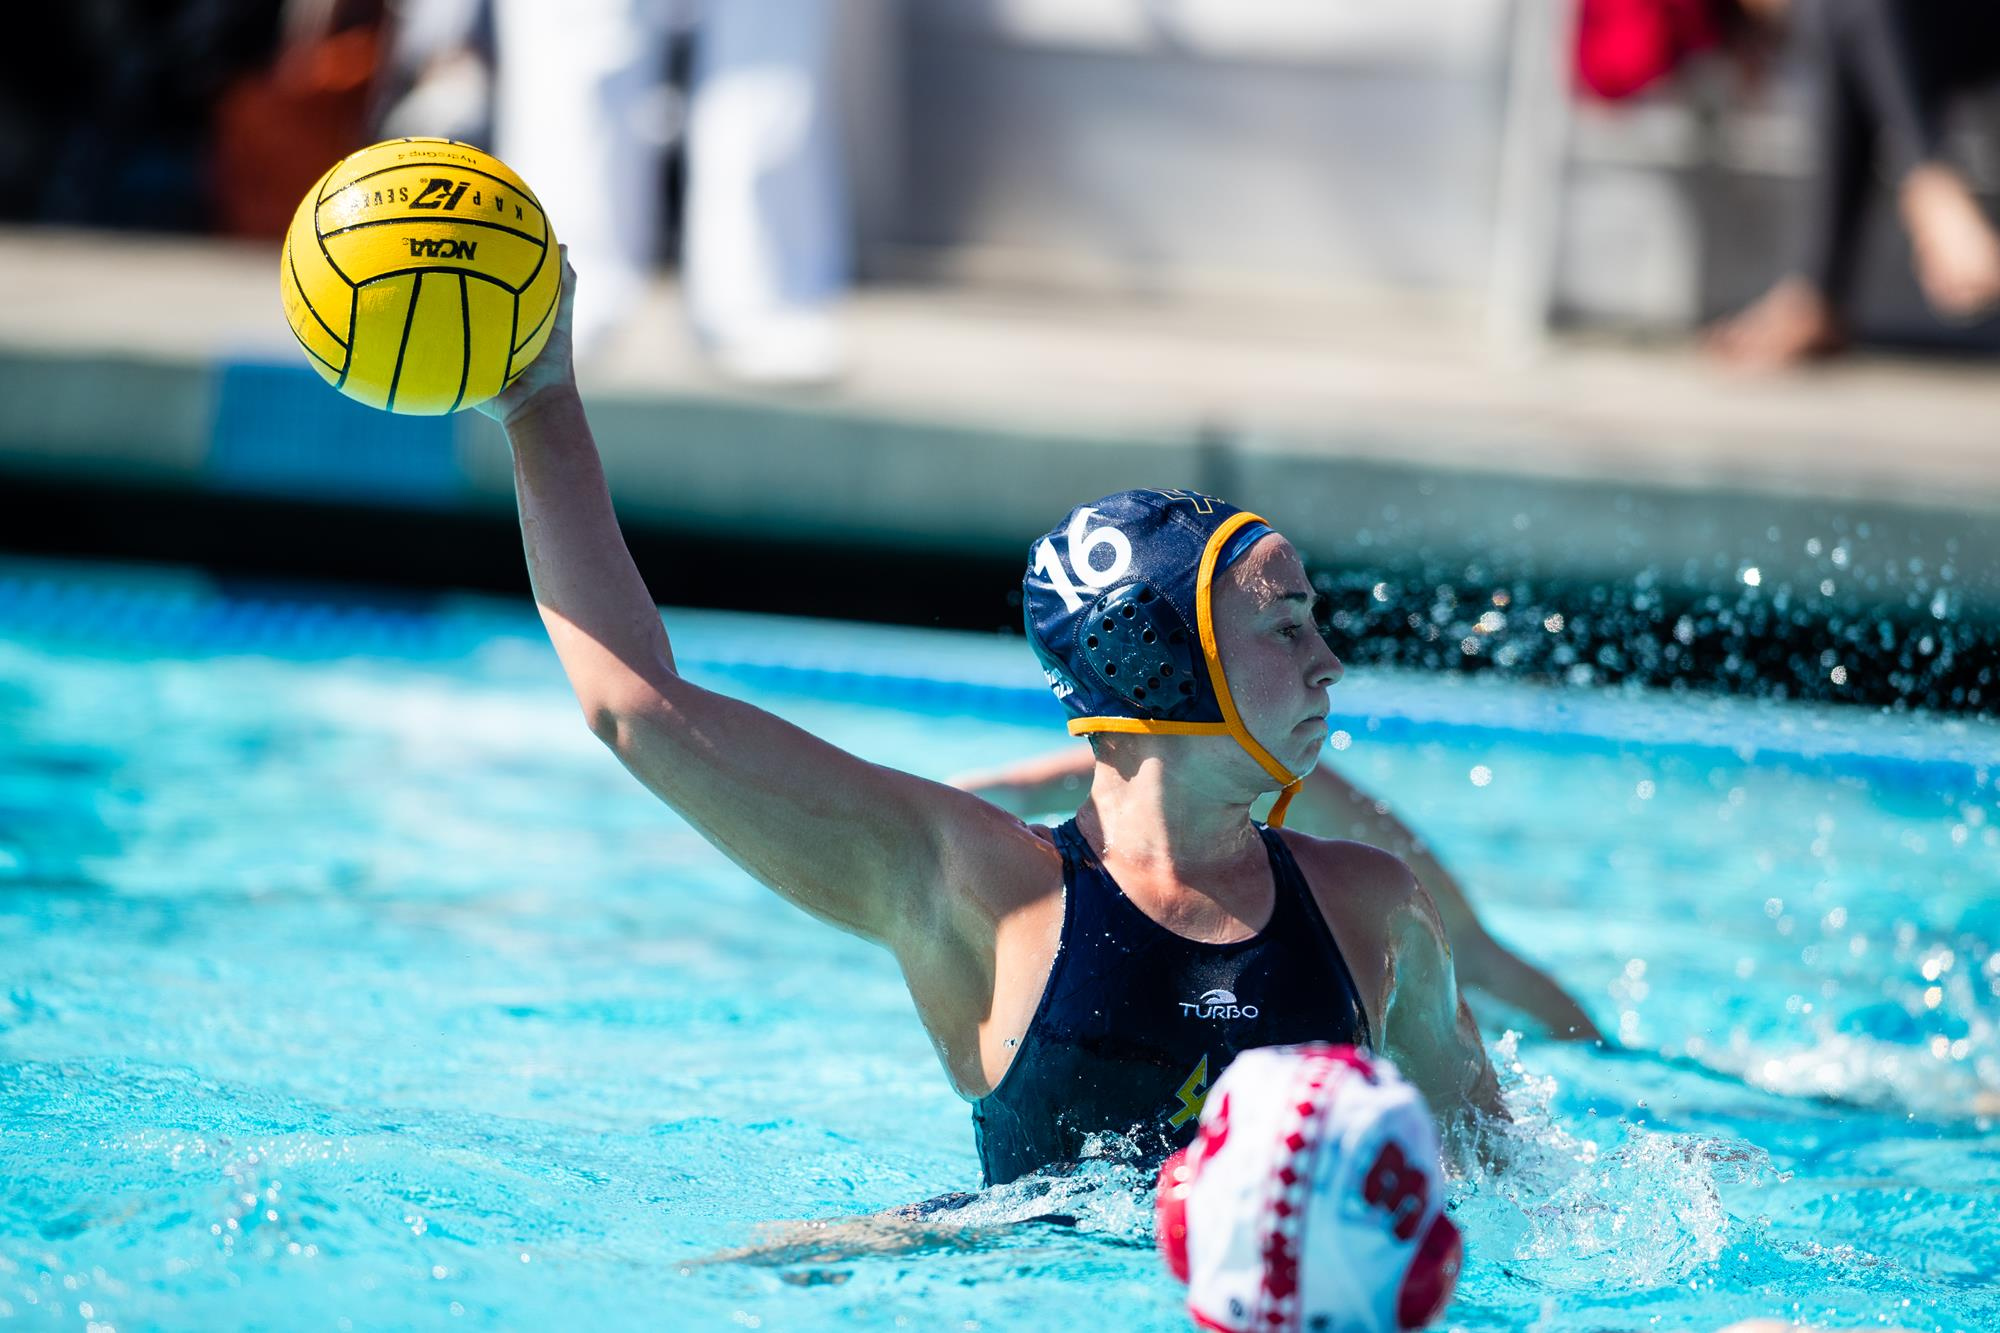 Grace Pevehouse 2019 20 Women S Water Polo University Of Images, Photos, Reviews